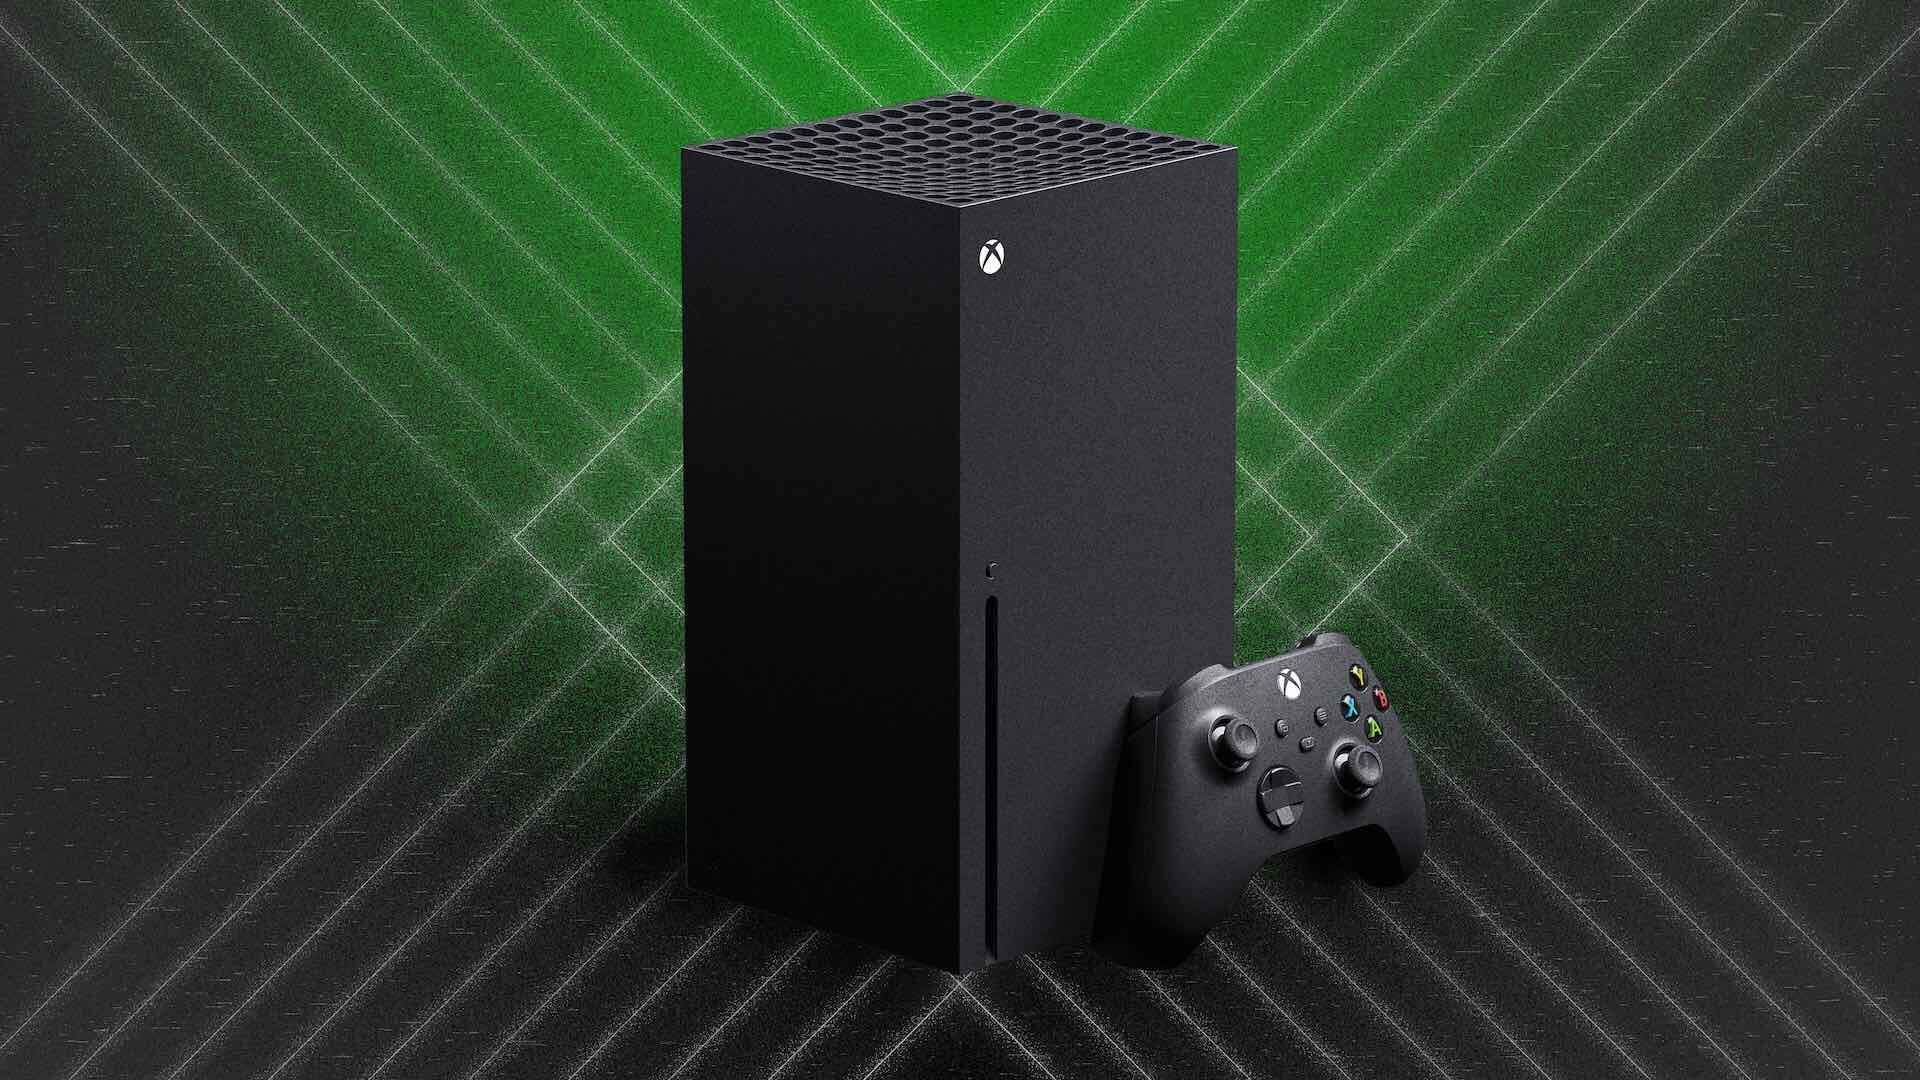 Xbox Series X Release Date and Specs Speculation - Xbox Series X Revealed